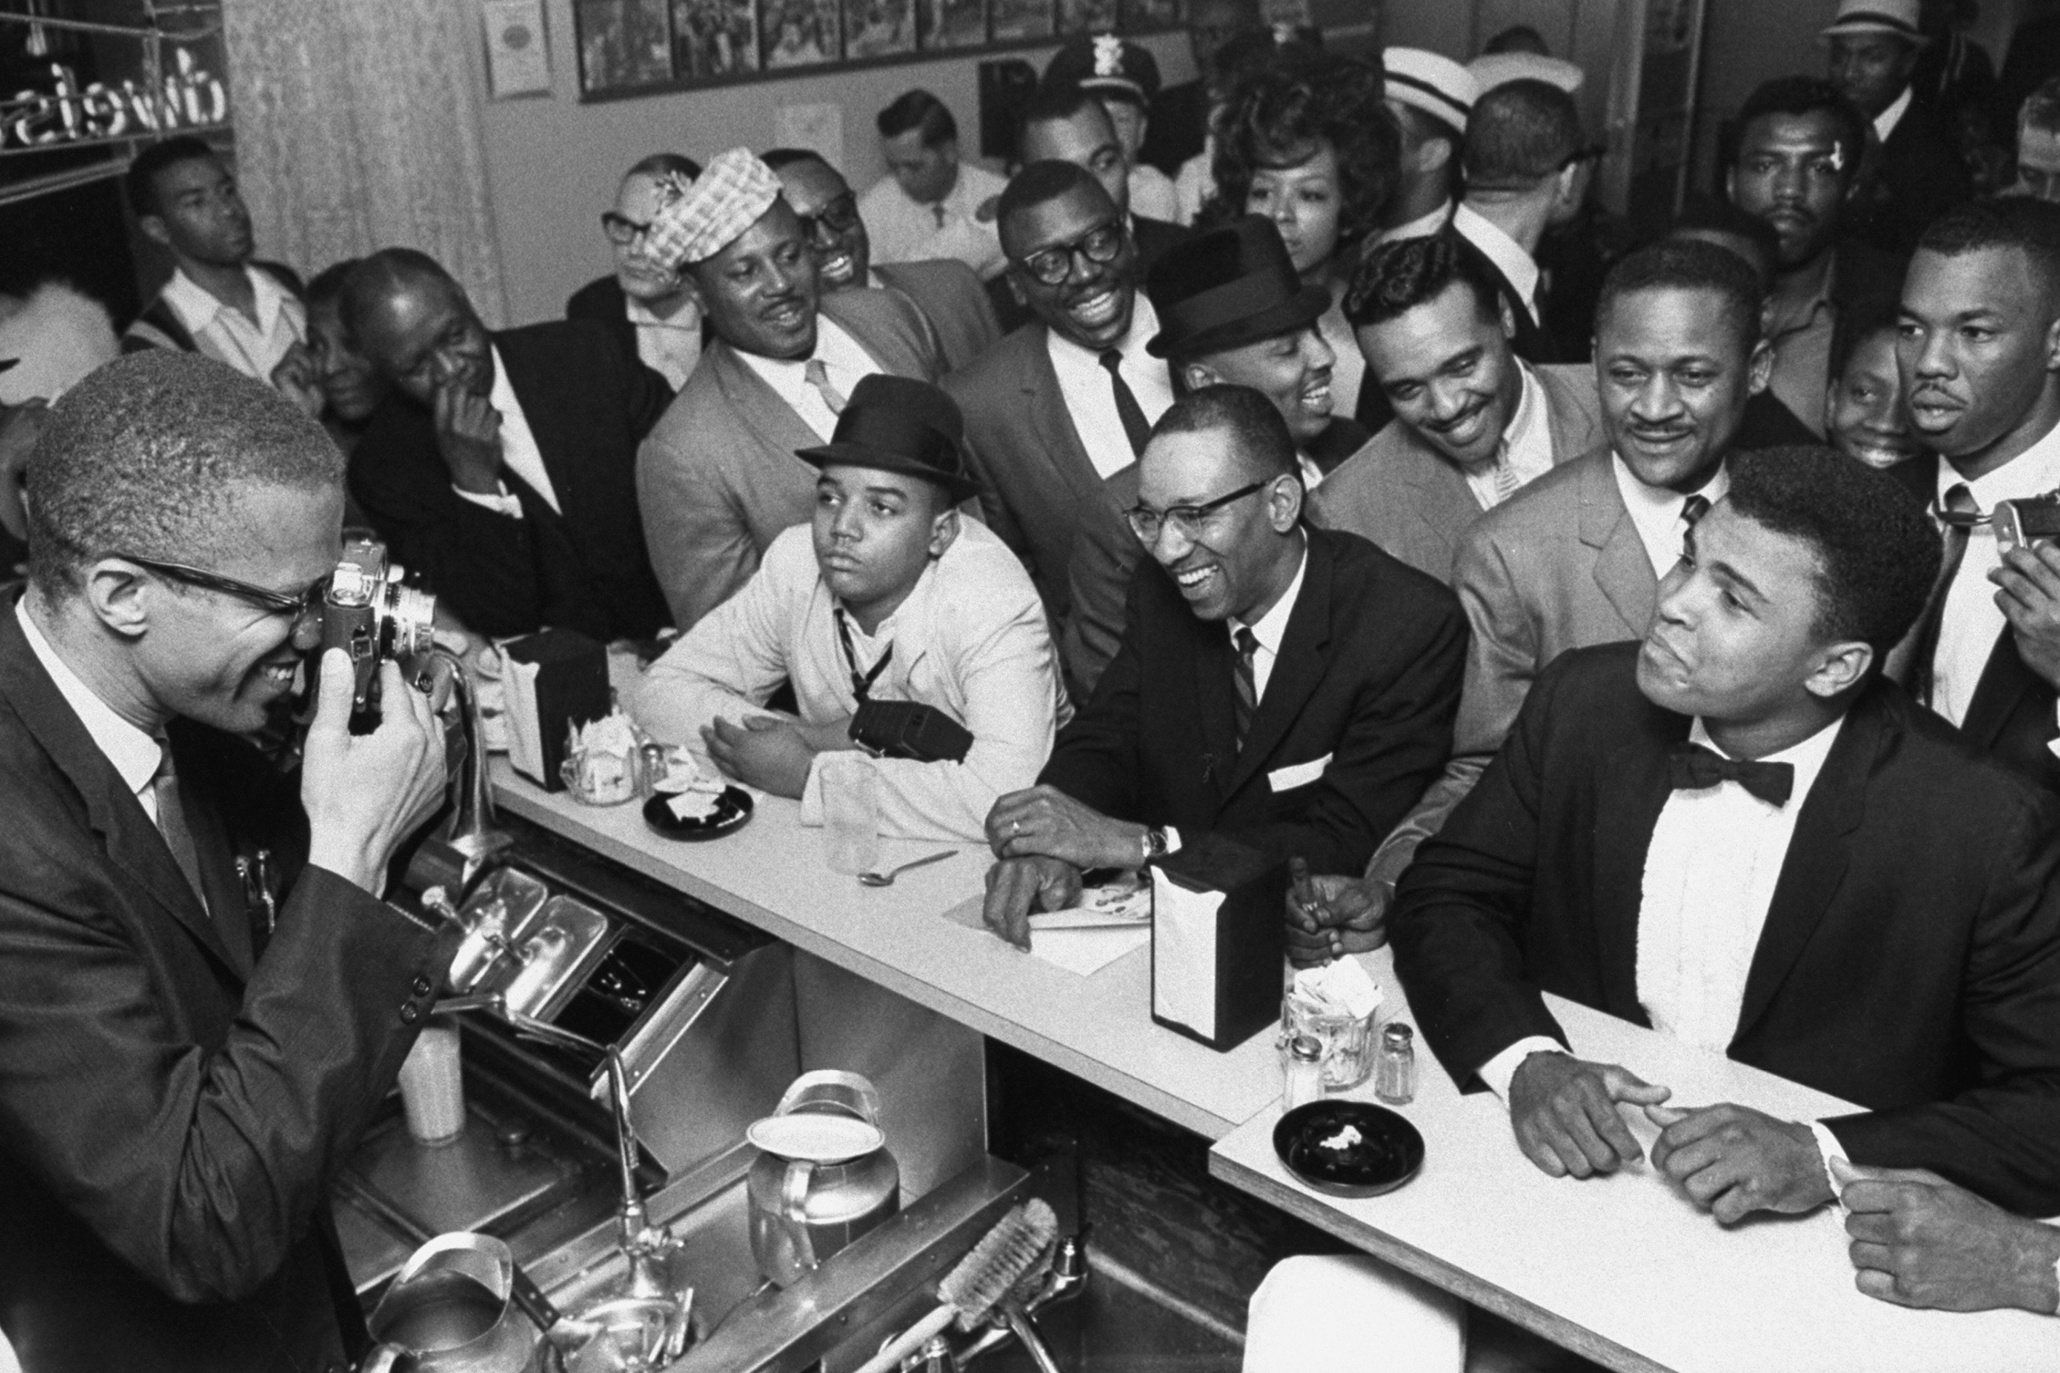 After beating Liston, Clay celebrates with Malcolm X. Rumours had already circulated that Clay had joined the Nation of Islam religious movement, and he finally declared them to be true the day after beating Liston. He changed his name to Muhammad Ali. Photograph: Bob Gomel/The LIFE Images Collection/Getty